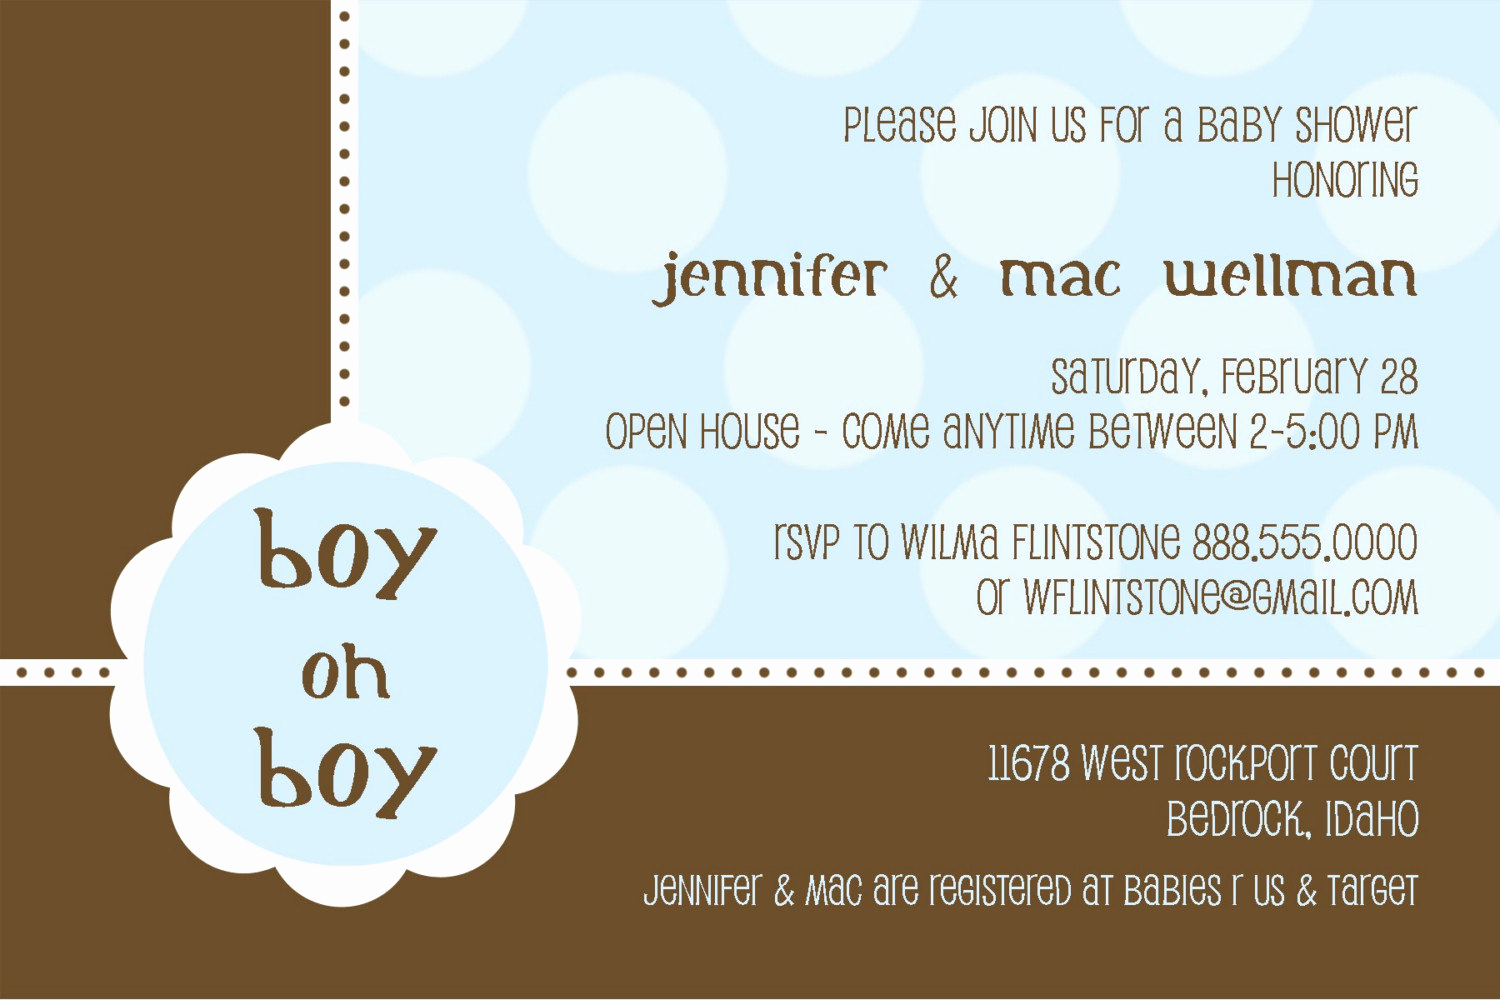 Baby Shower Pics for Invitation Awesome Boy Oh Boy Baby Shower Invitations